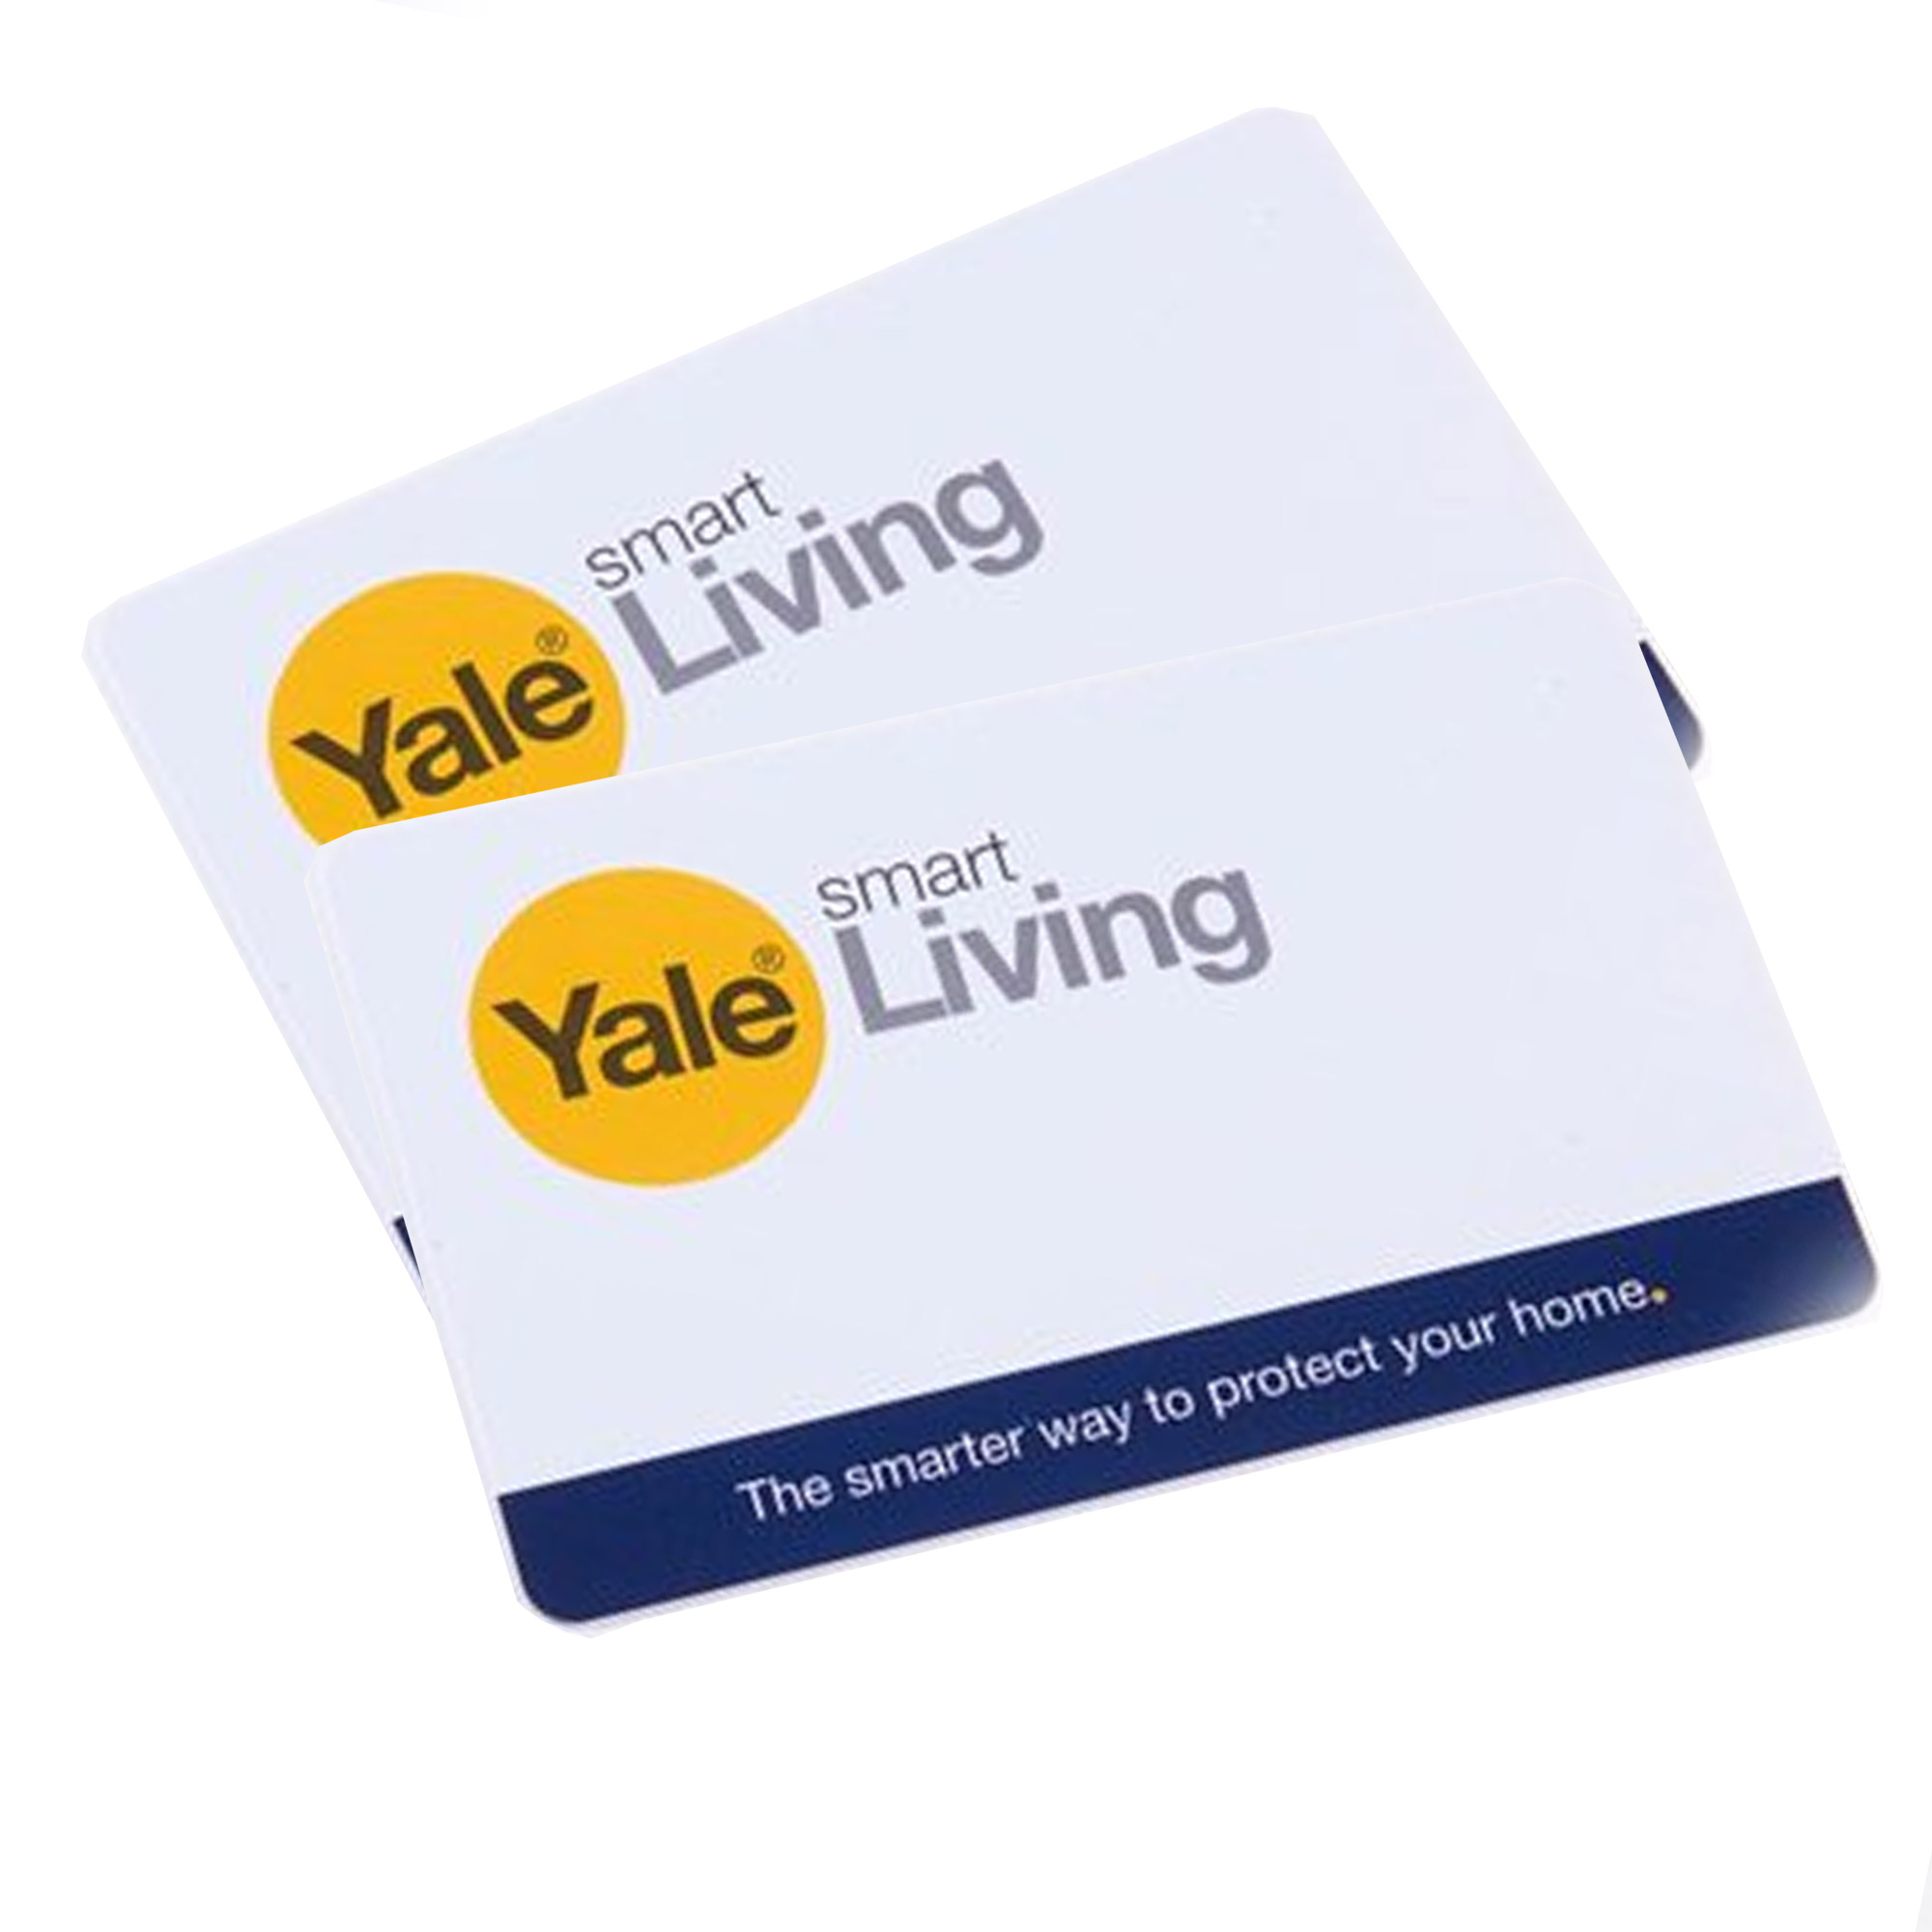 Yale P Yd 01 Con Rfidc Yale Keyless Connected Key Cards Pack Of 2